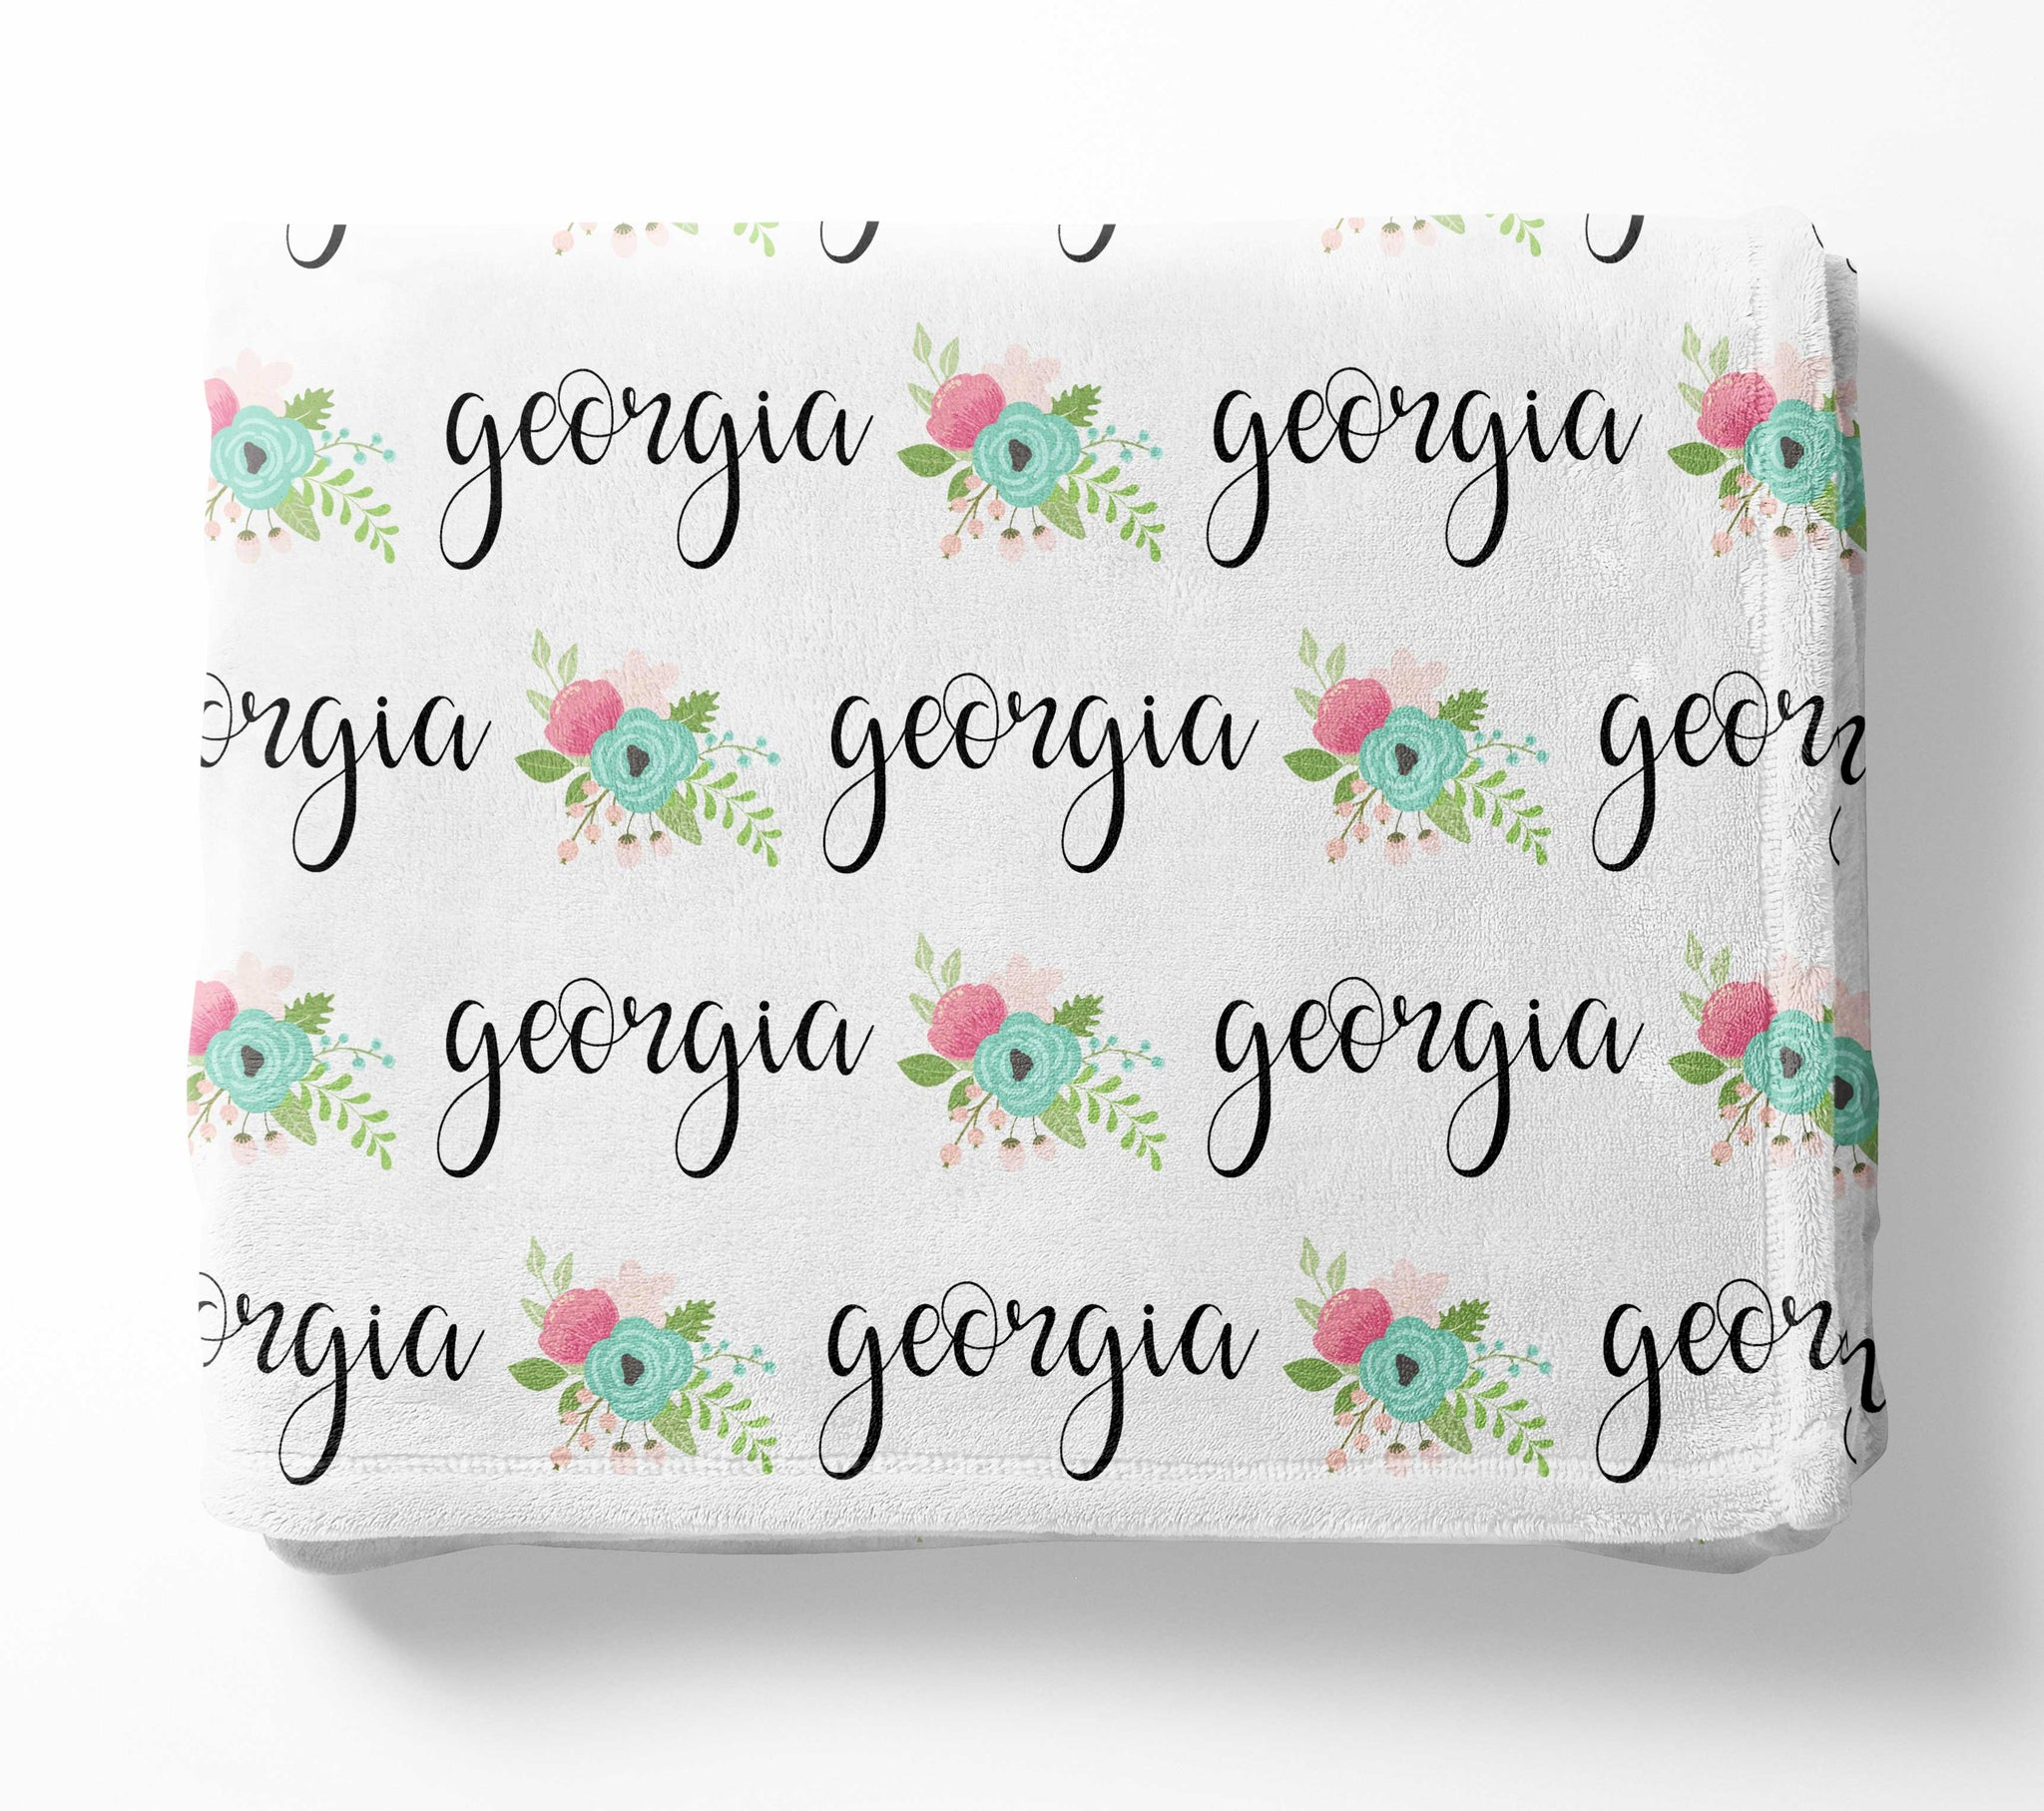 Personalized Plush Blanket - Georgia Floral